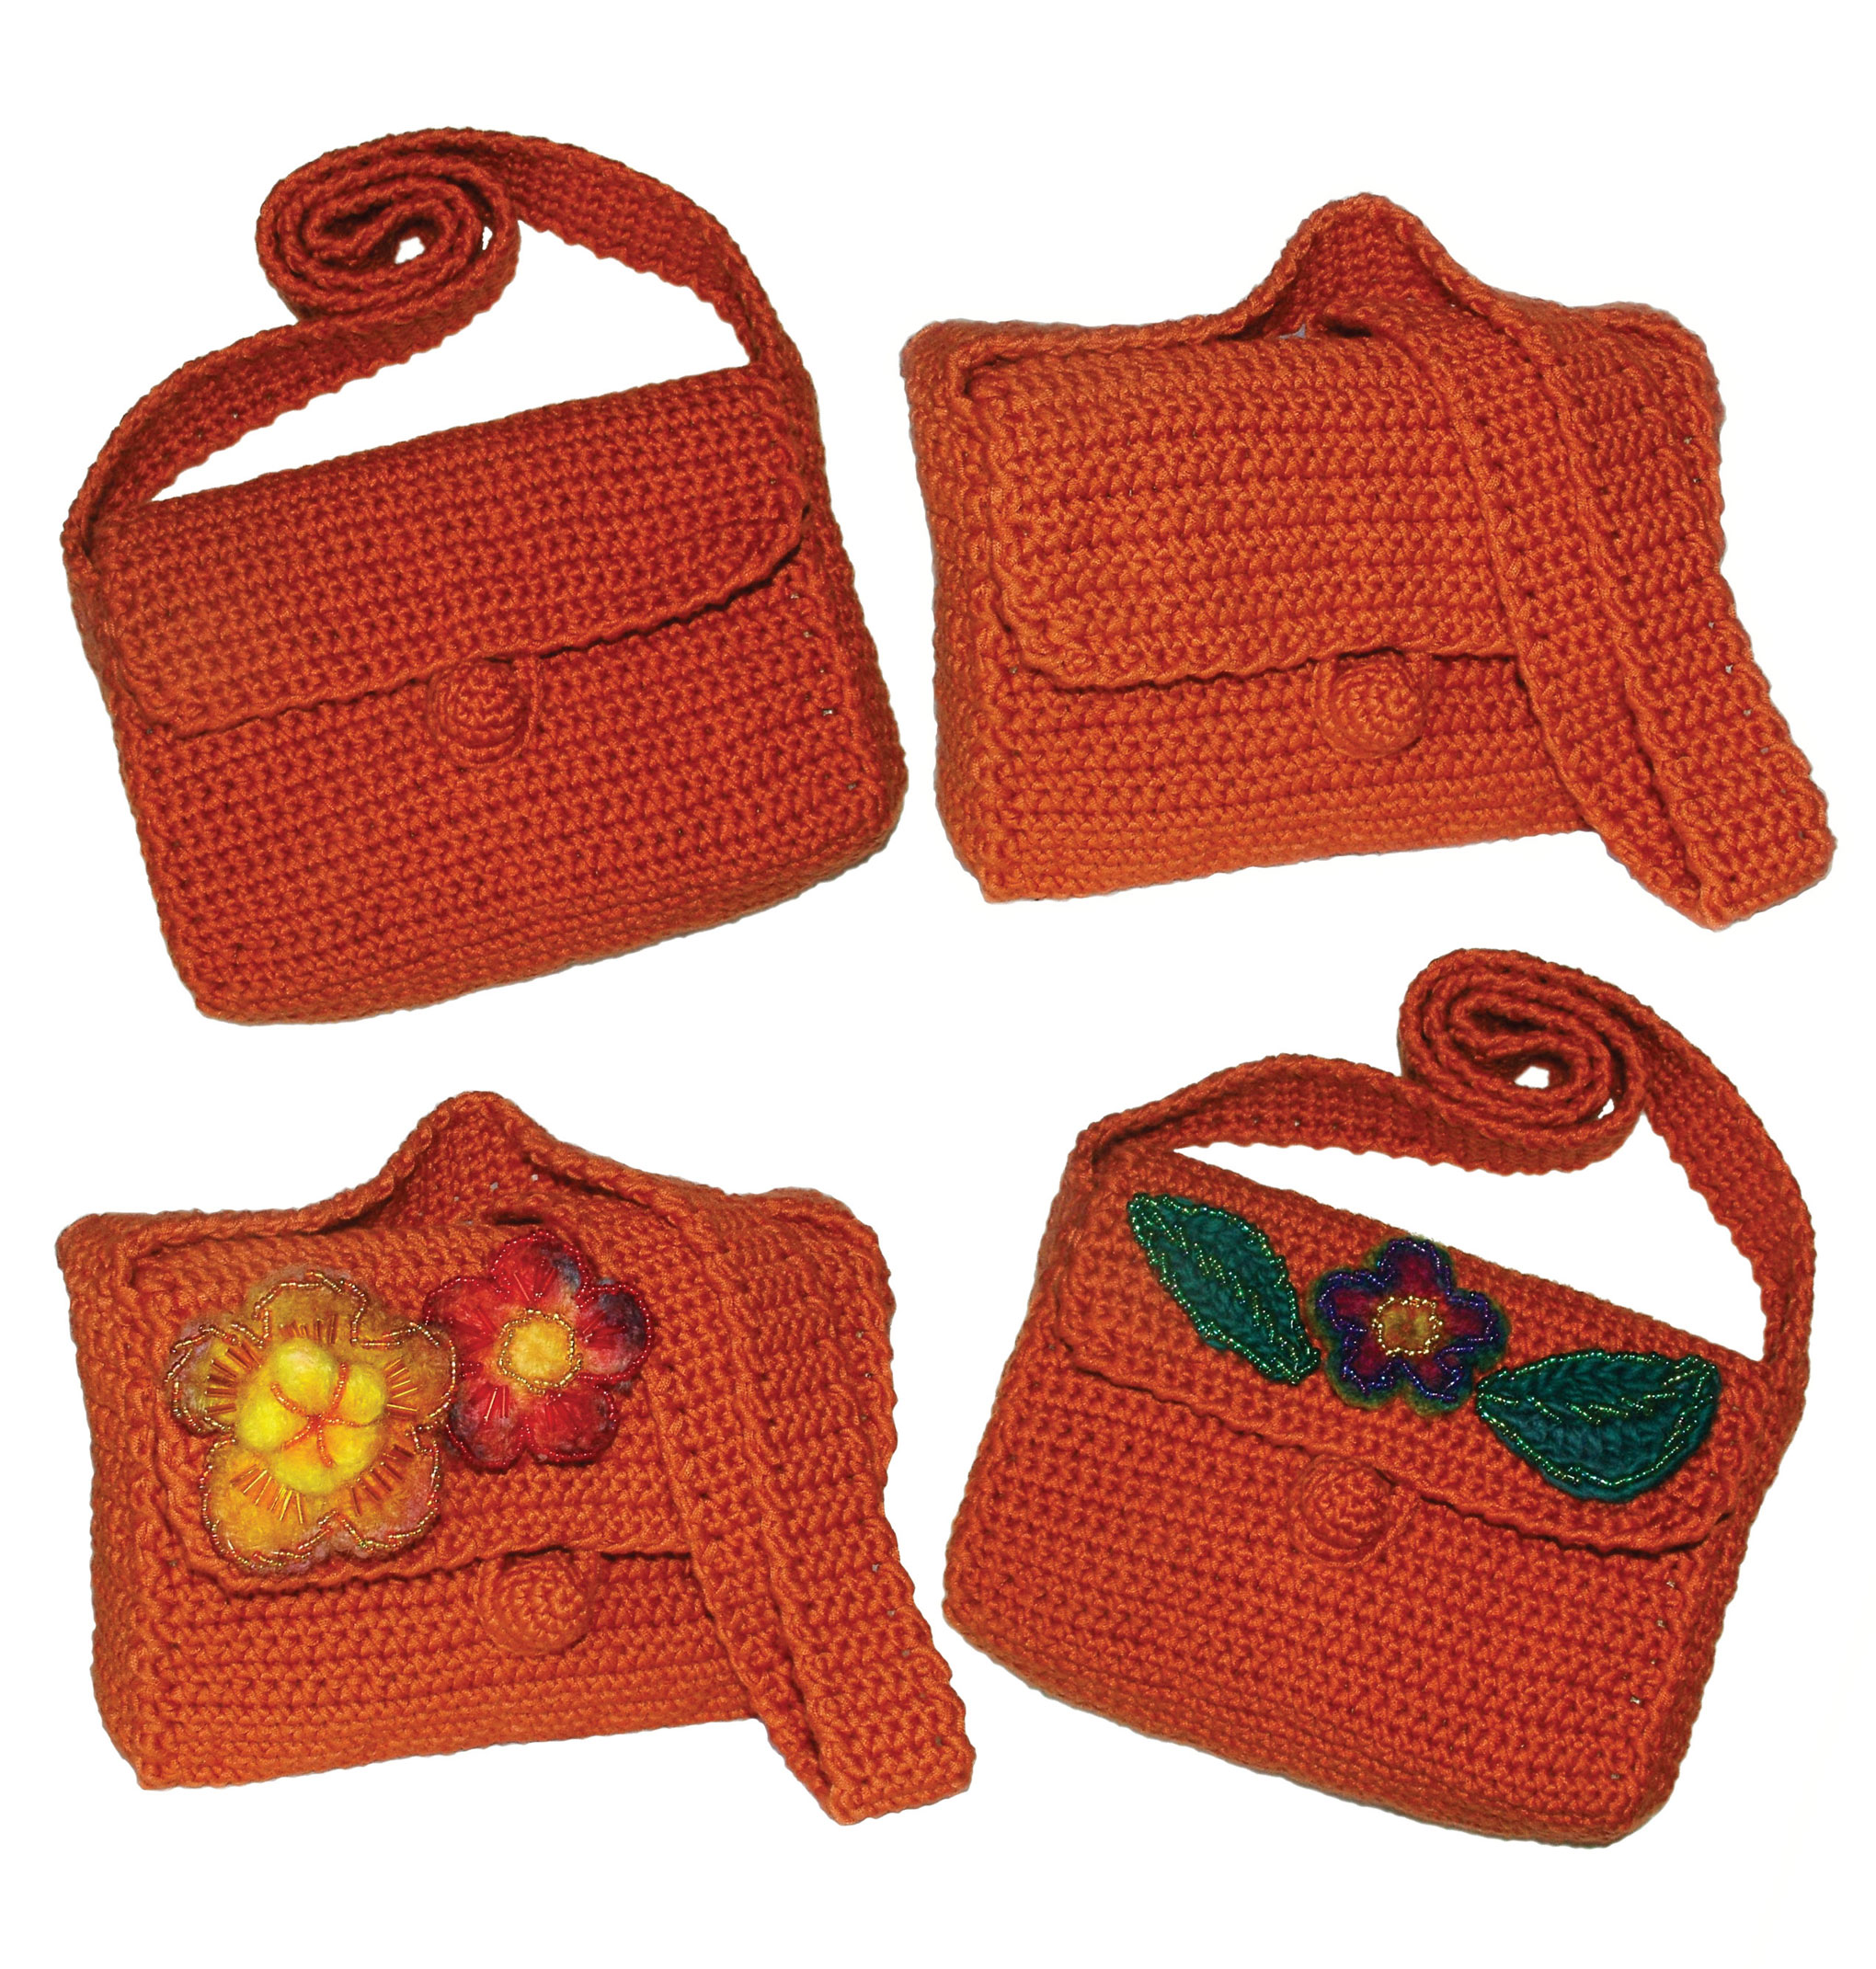 Crochet Backpack Purse : Easy Basic Crochet Bag/Purse Pattern ~ $6.90 AUD